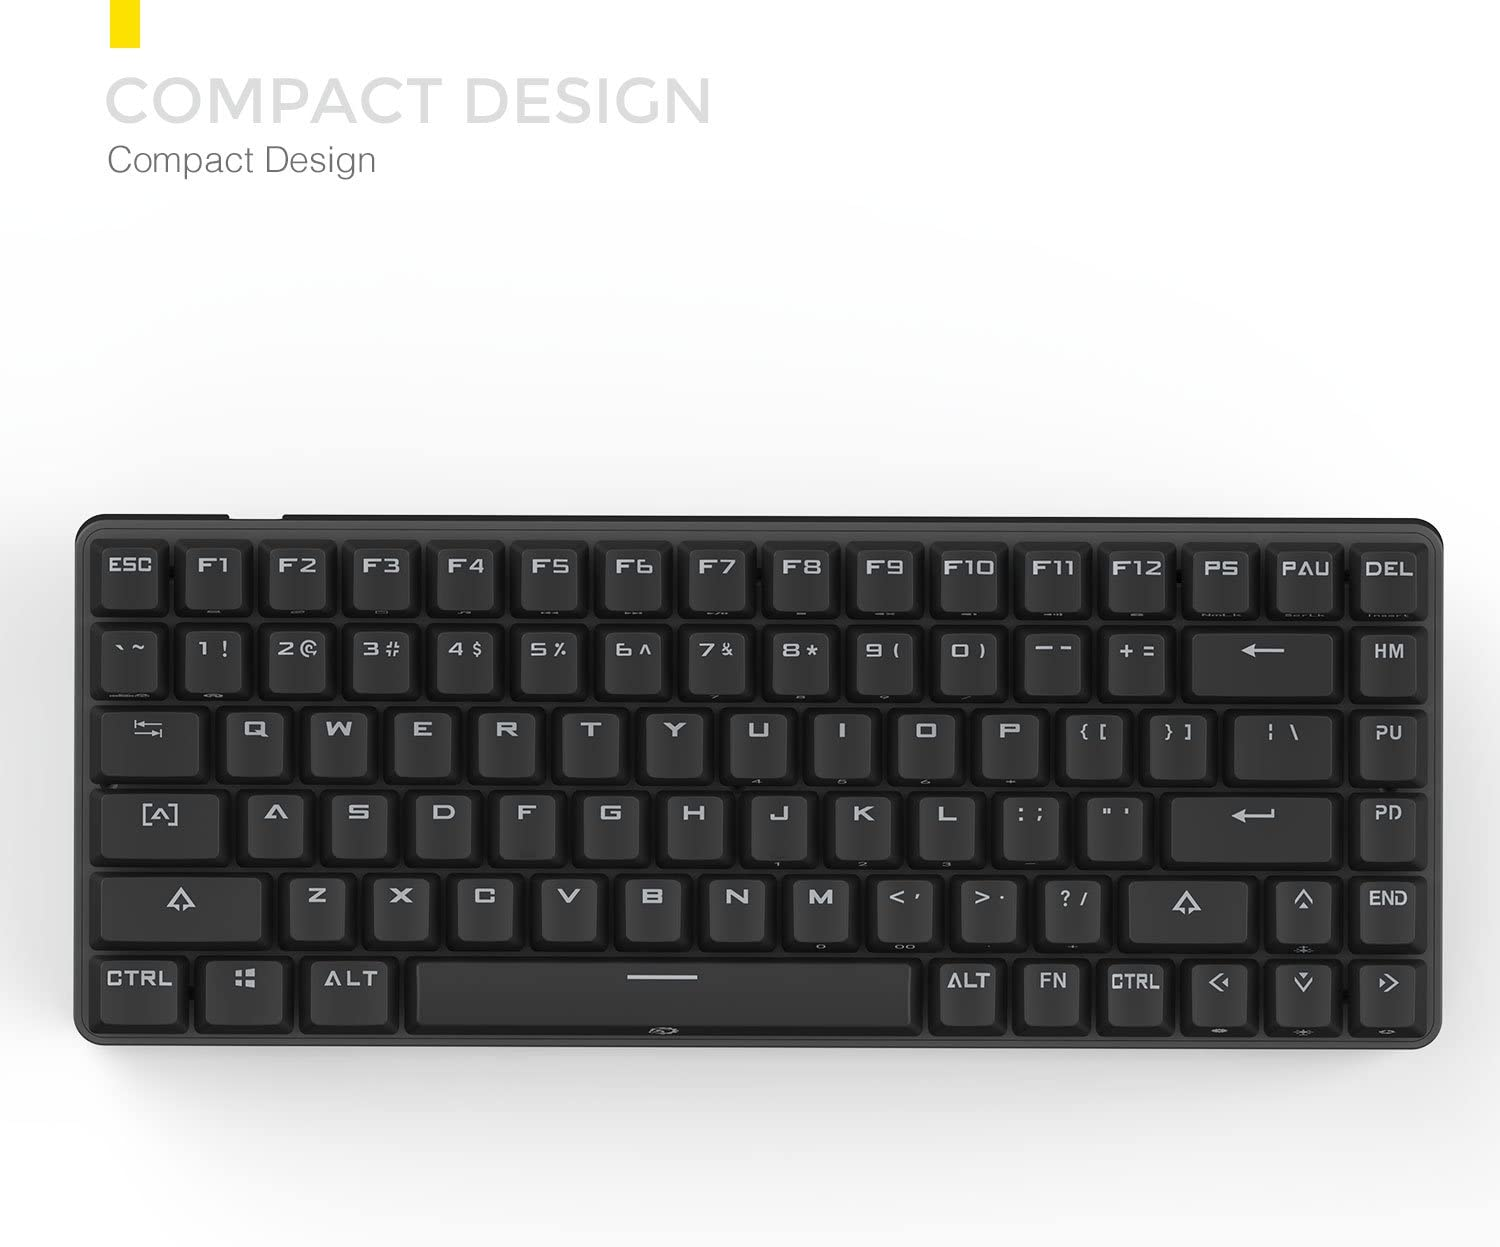 DREVO Excalibur 84-Key Cherry MX Switch Full Metal Mechanical Gaming Keyboard Cherry MX Blue Switch with Specially Coated Keycaps Black Edition